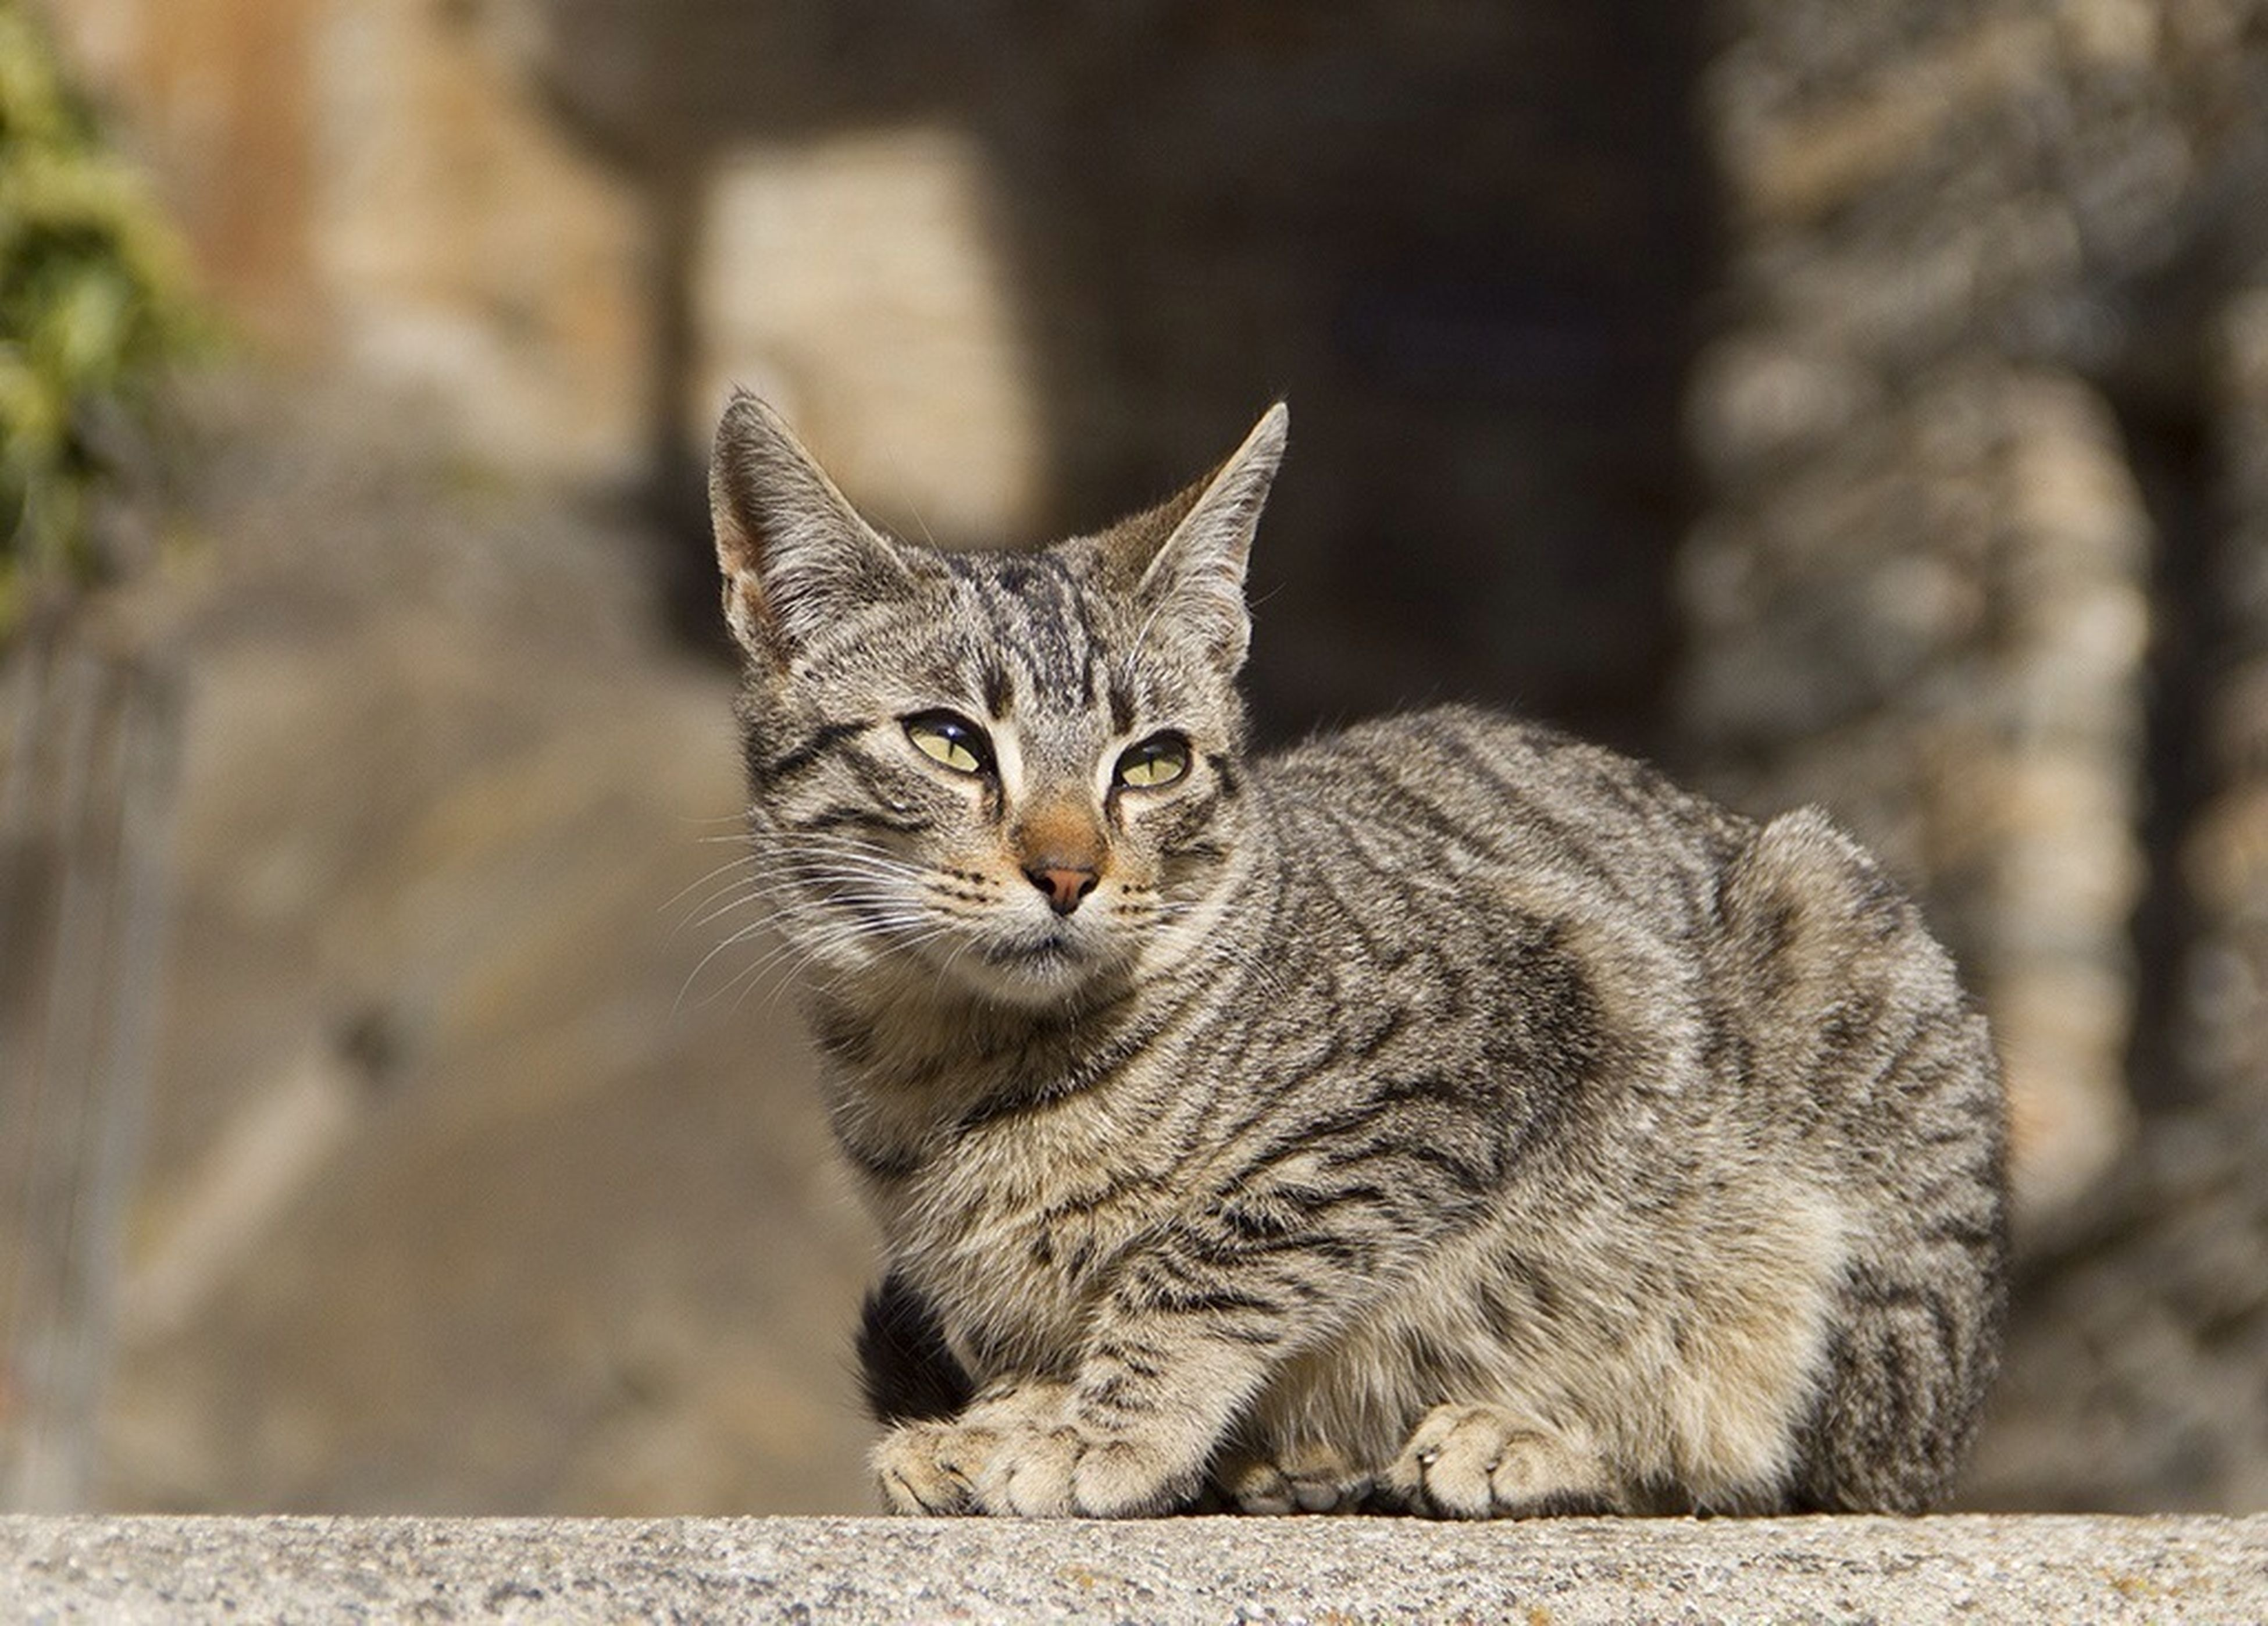 domestic cat, cat, feline, animal themes, one animal, mammal, whisker, pets, domestic animals, portrait, looking at camera, focus on foreground, close-up, sitting, relaxation, alertness, tabby, outdoors, staring